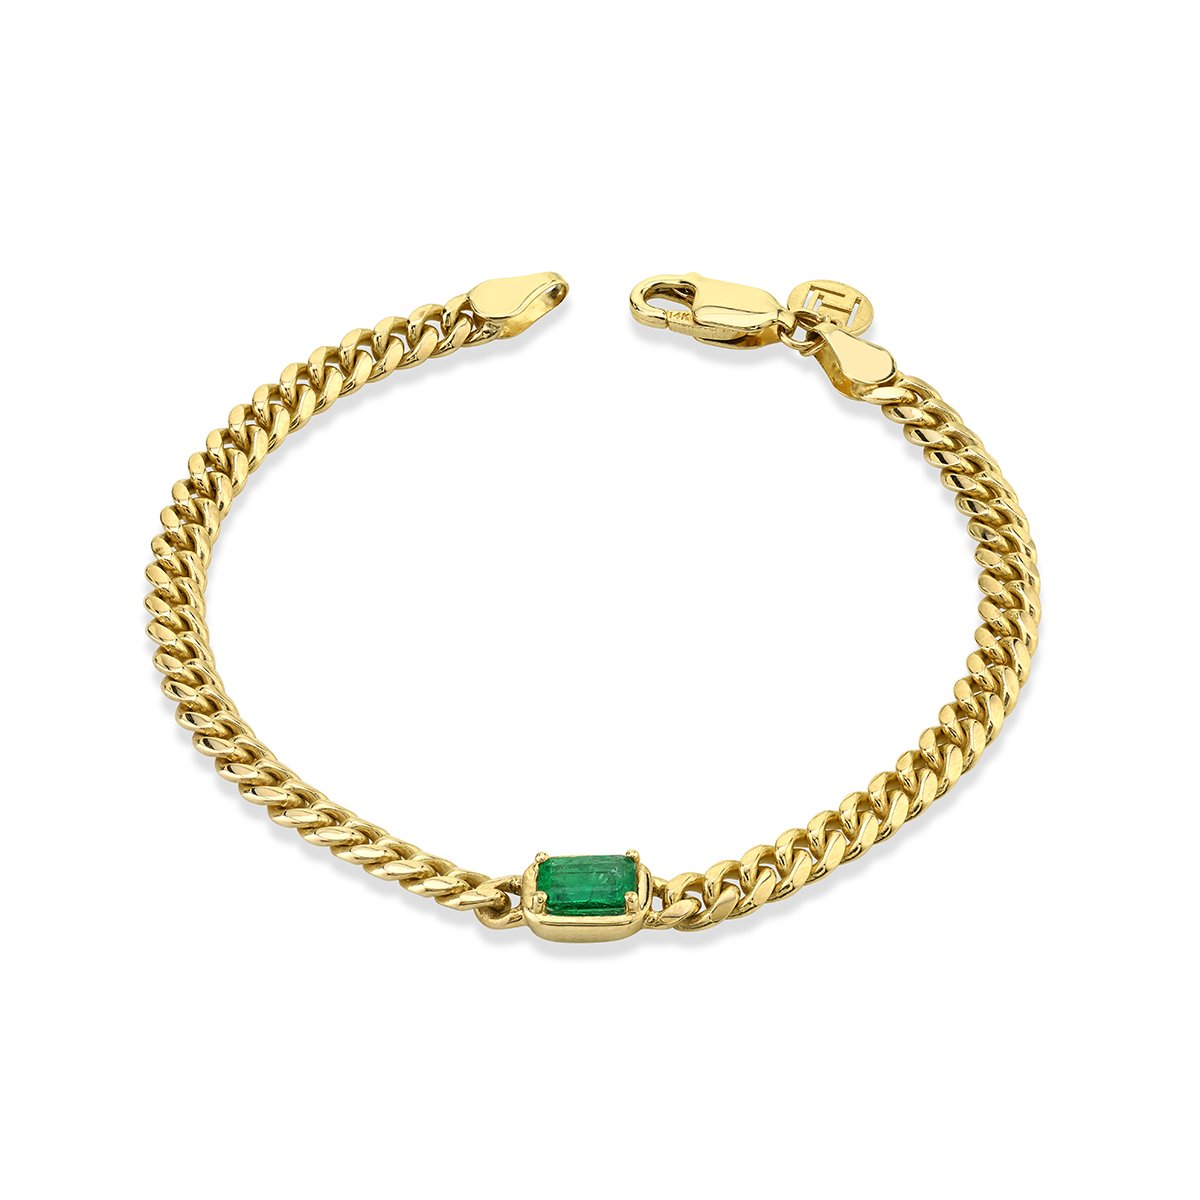 NEW! Queen Emerald Cut Emerald Cuban Bracelet